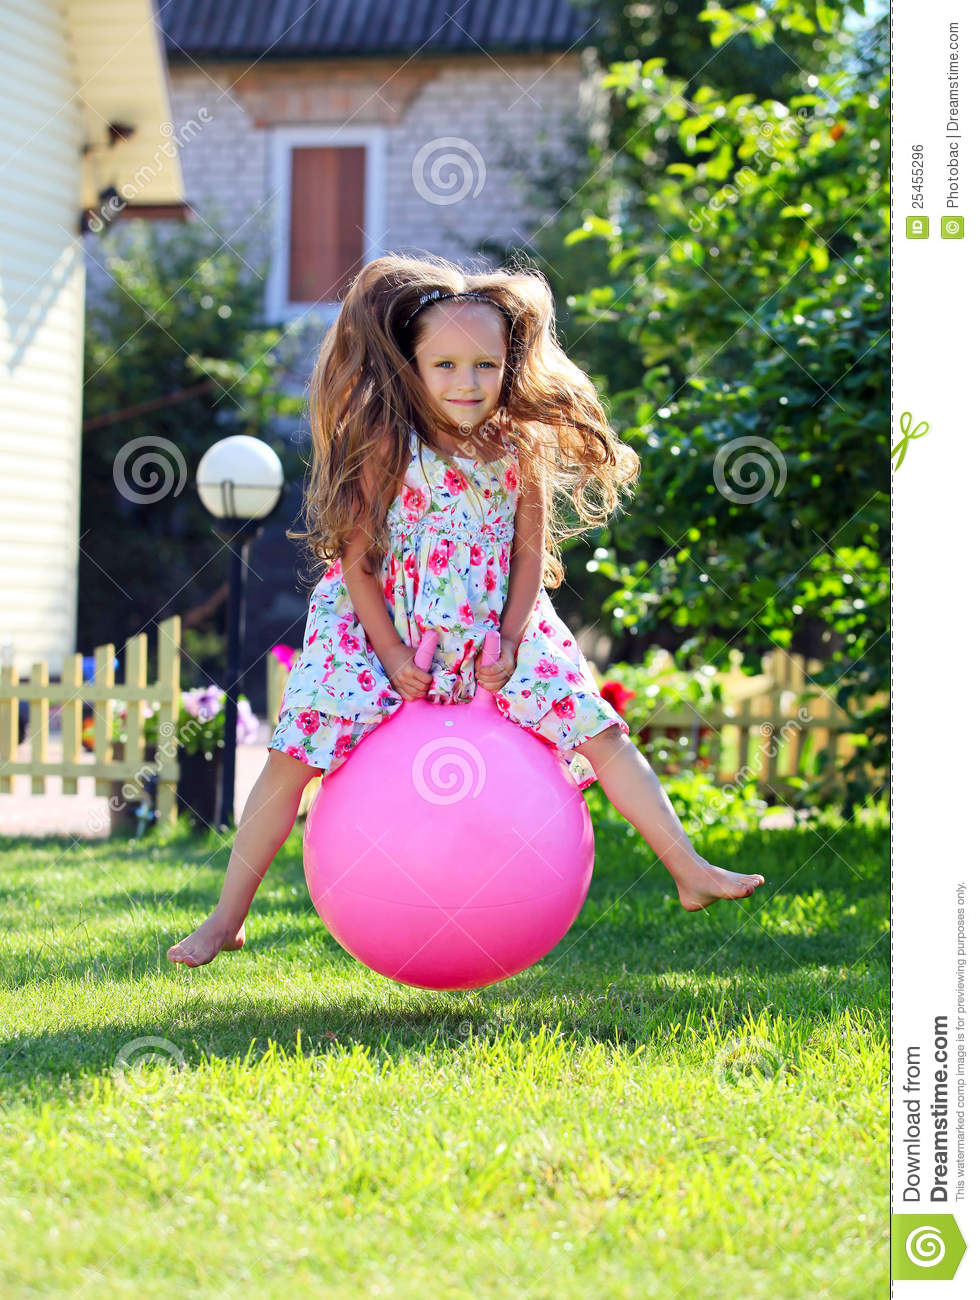 Adorable Four Year Boy With Big Blue Eyes Stock Image: Cute Four-year Girl Bouncing On A Big Ball Stock Photo